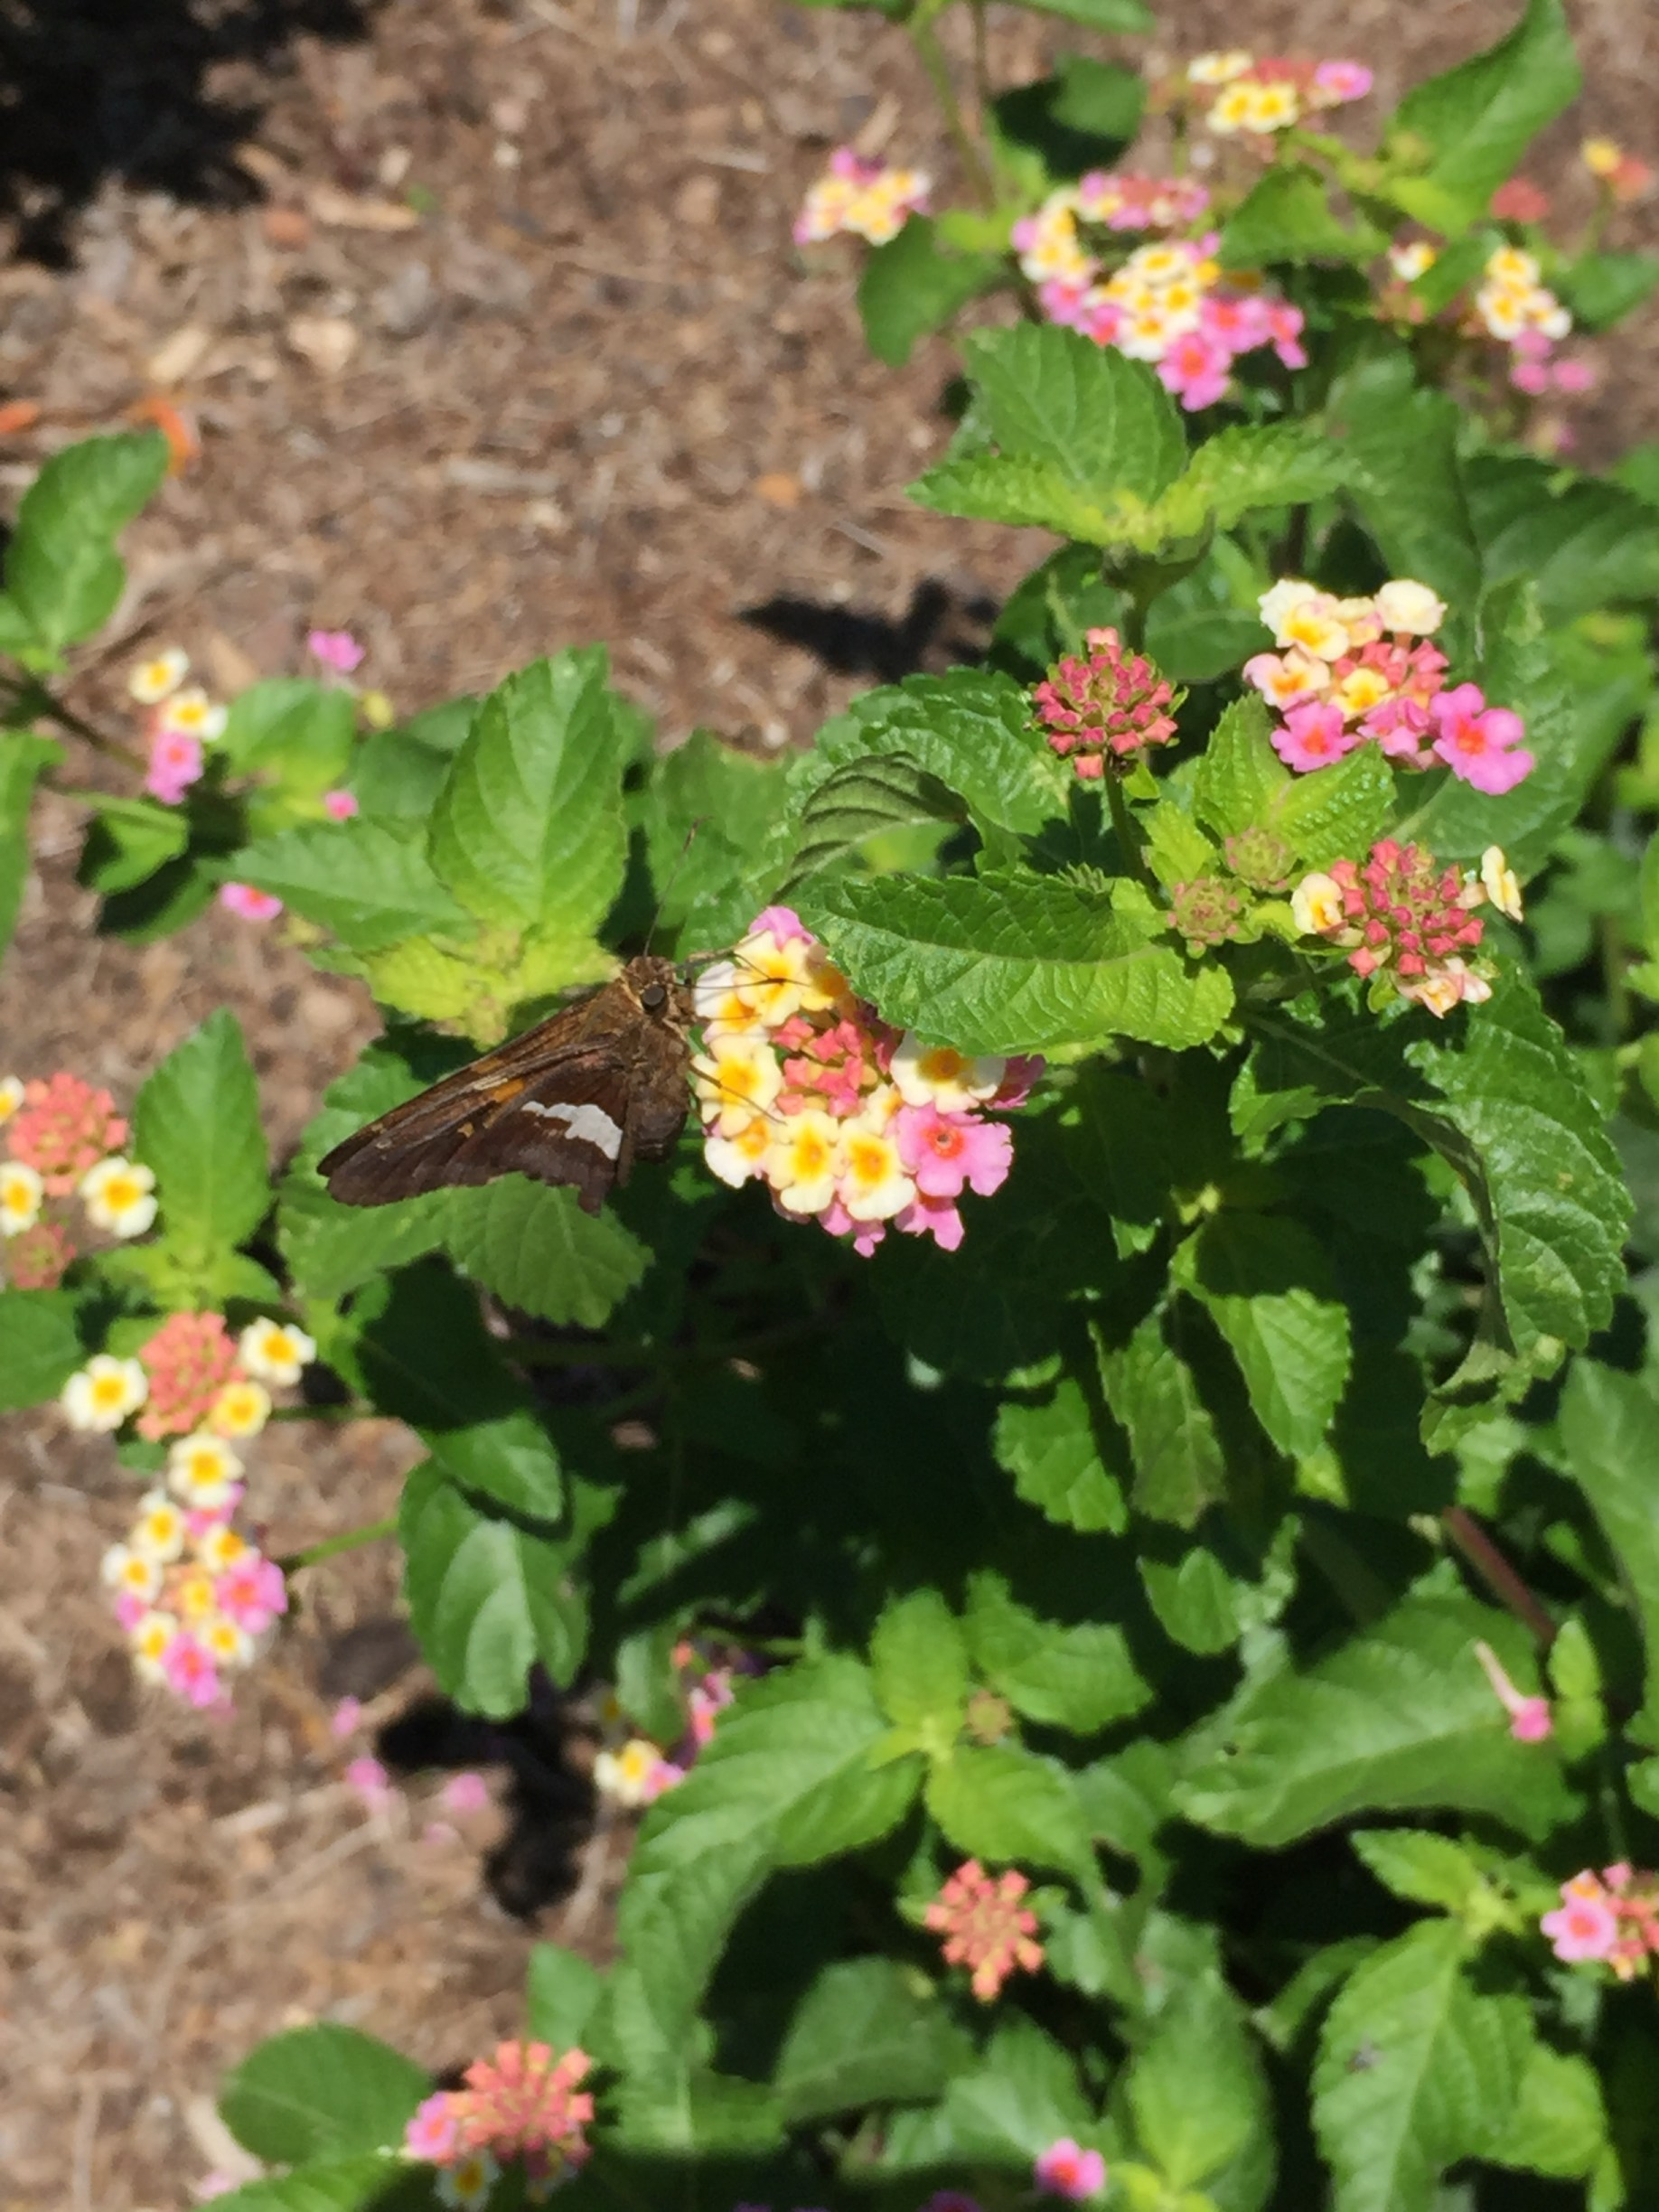 A butterfly visits lantana, one of almost 300 native and non-native plant species in the Butterfly Garden. Photo © 2018 Elaine Mills.